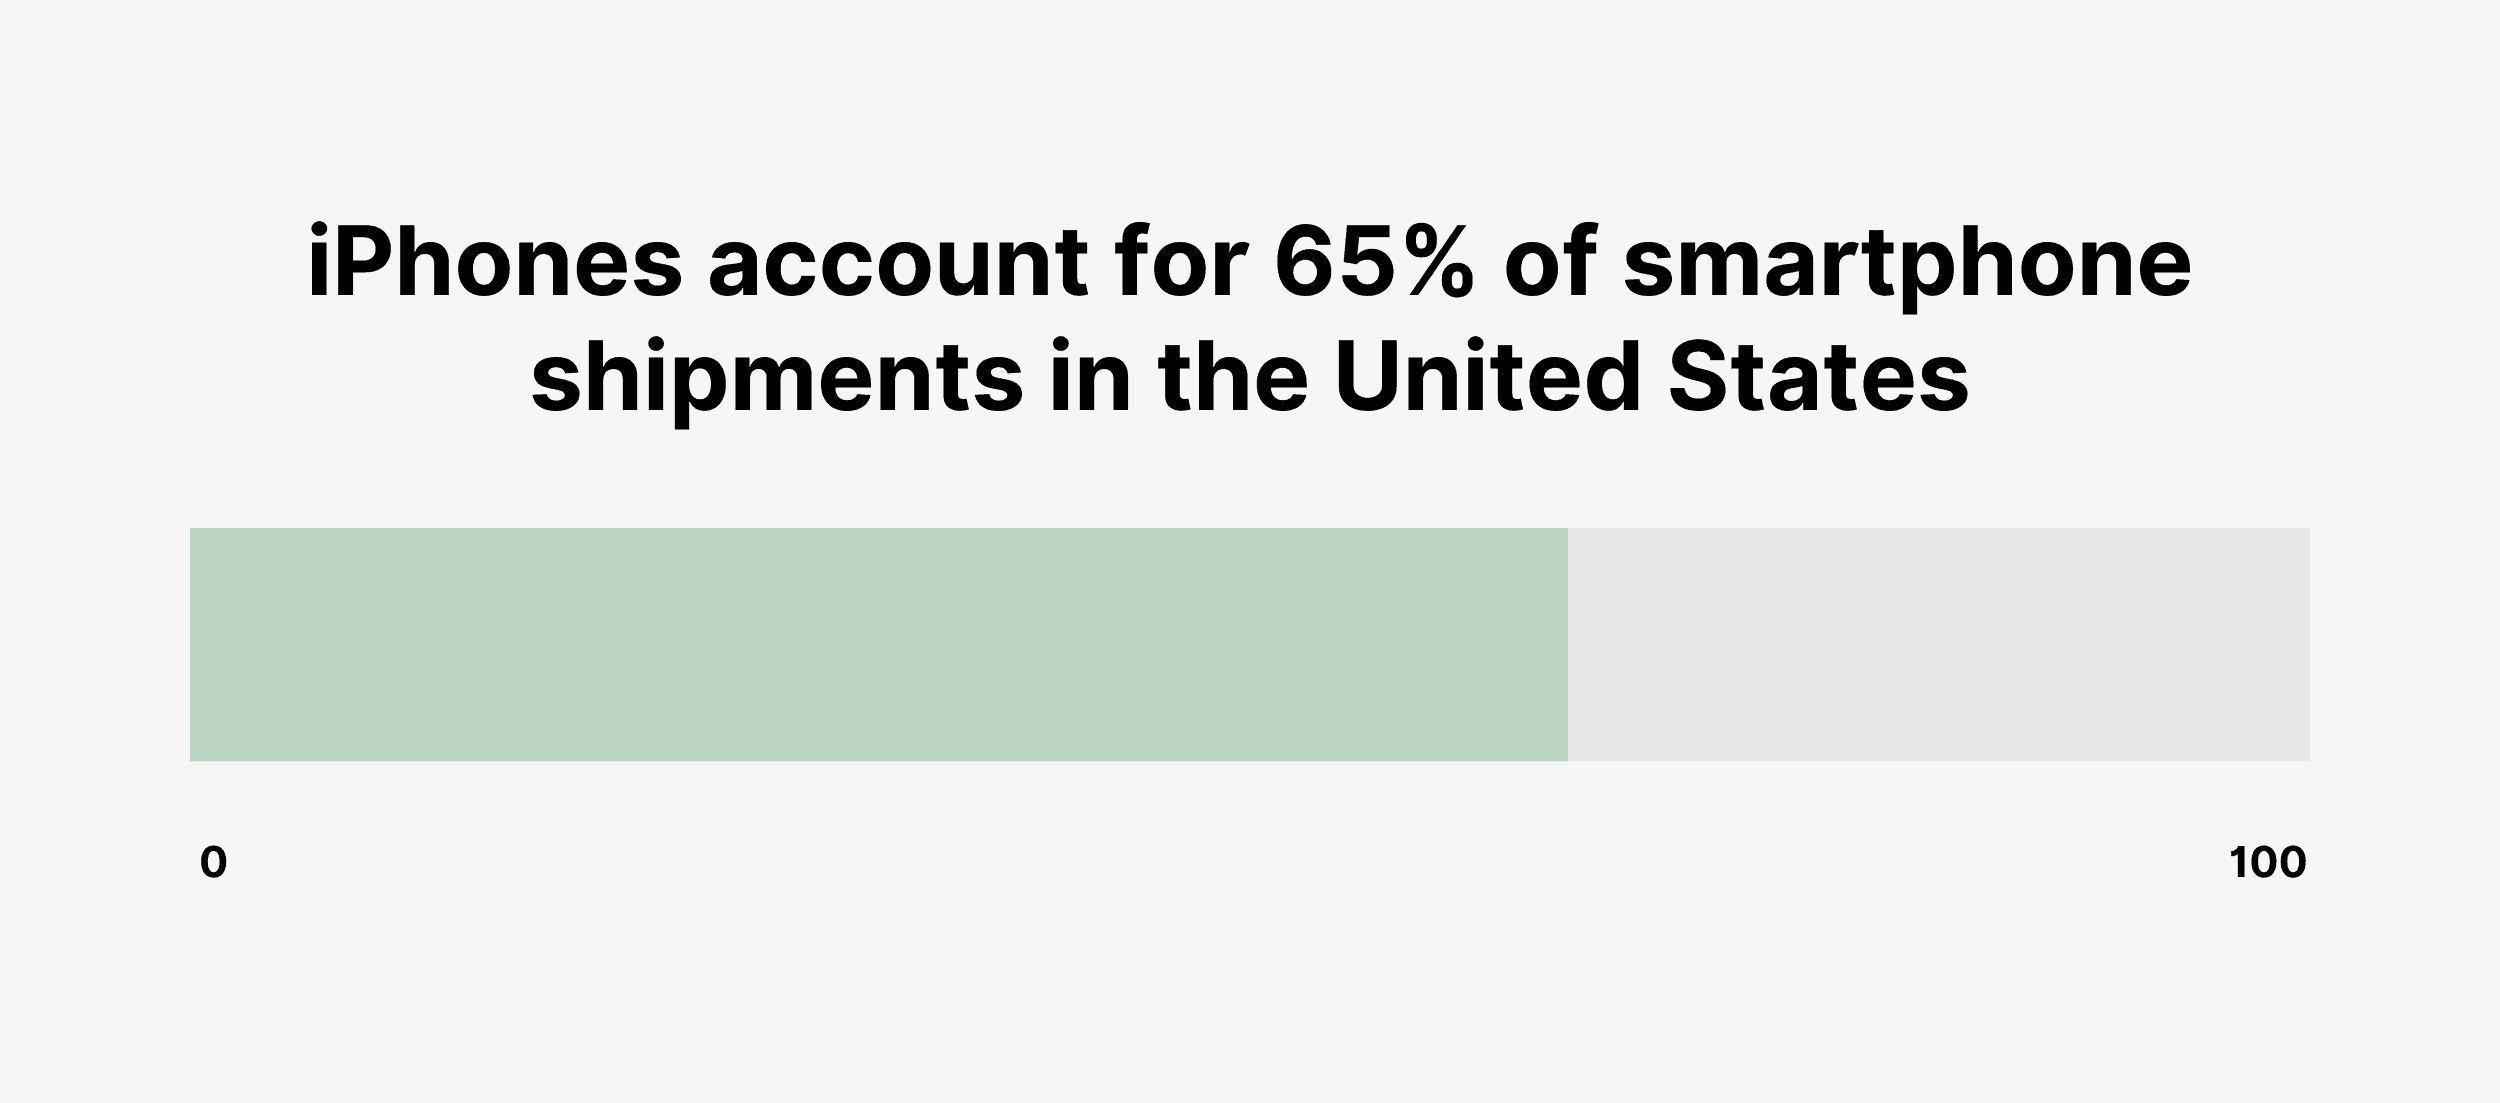 iPhones account for 65% of smartphone shipments in the United States